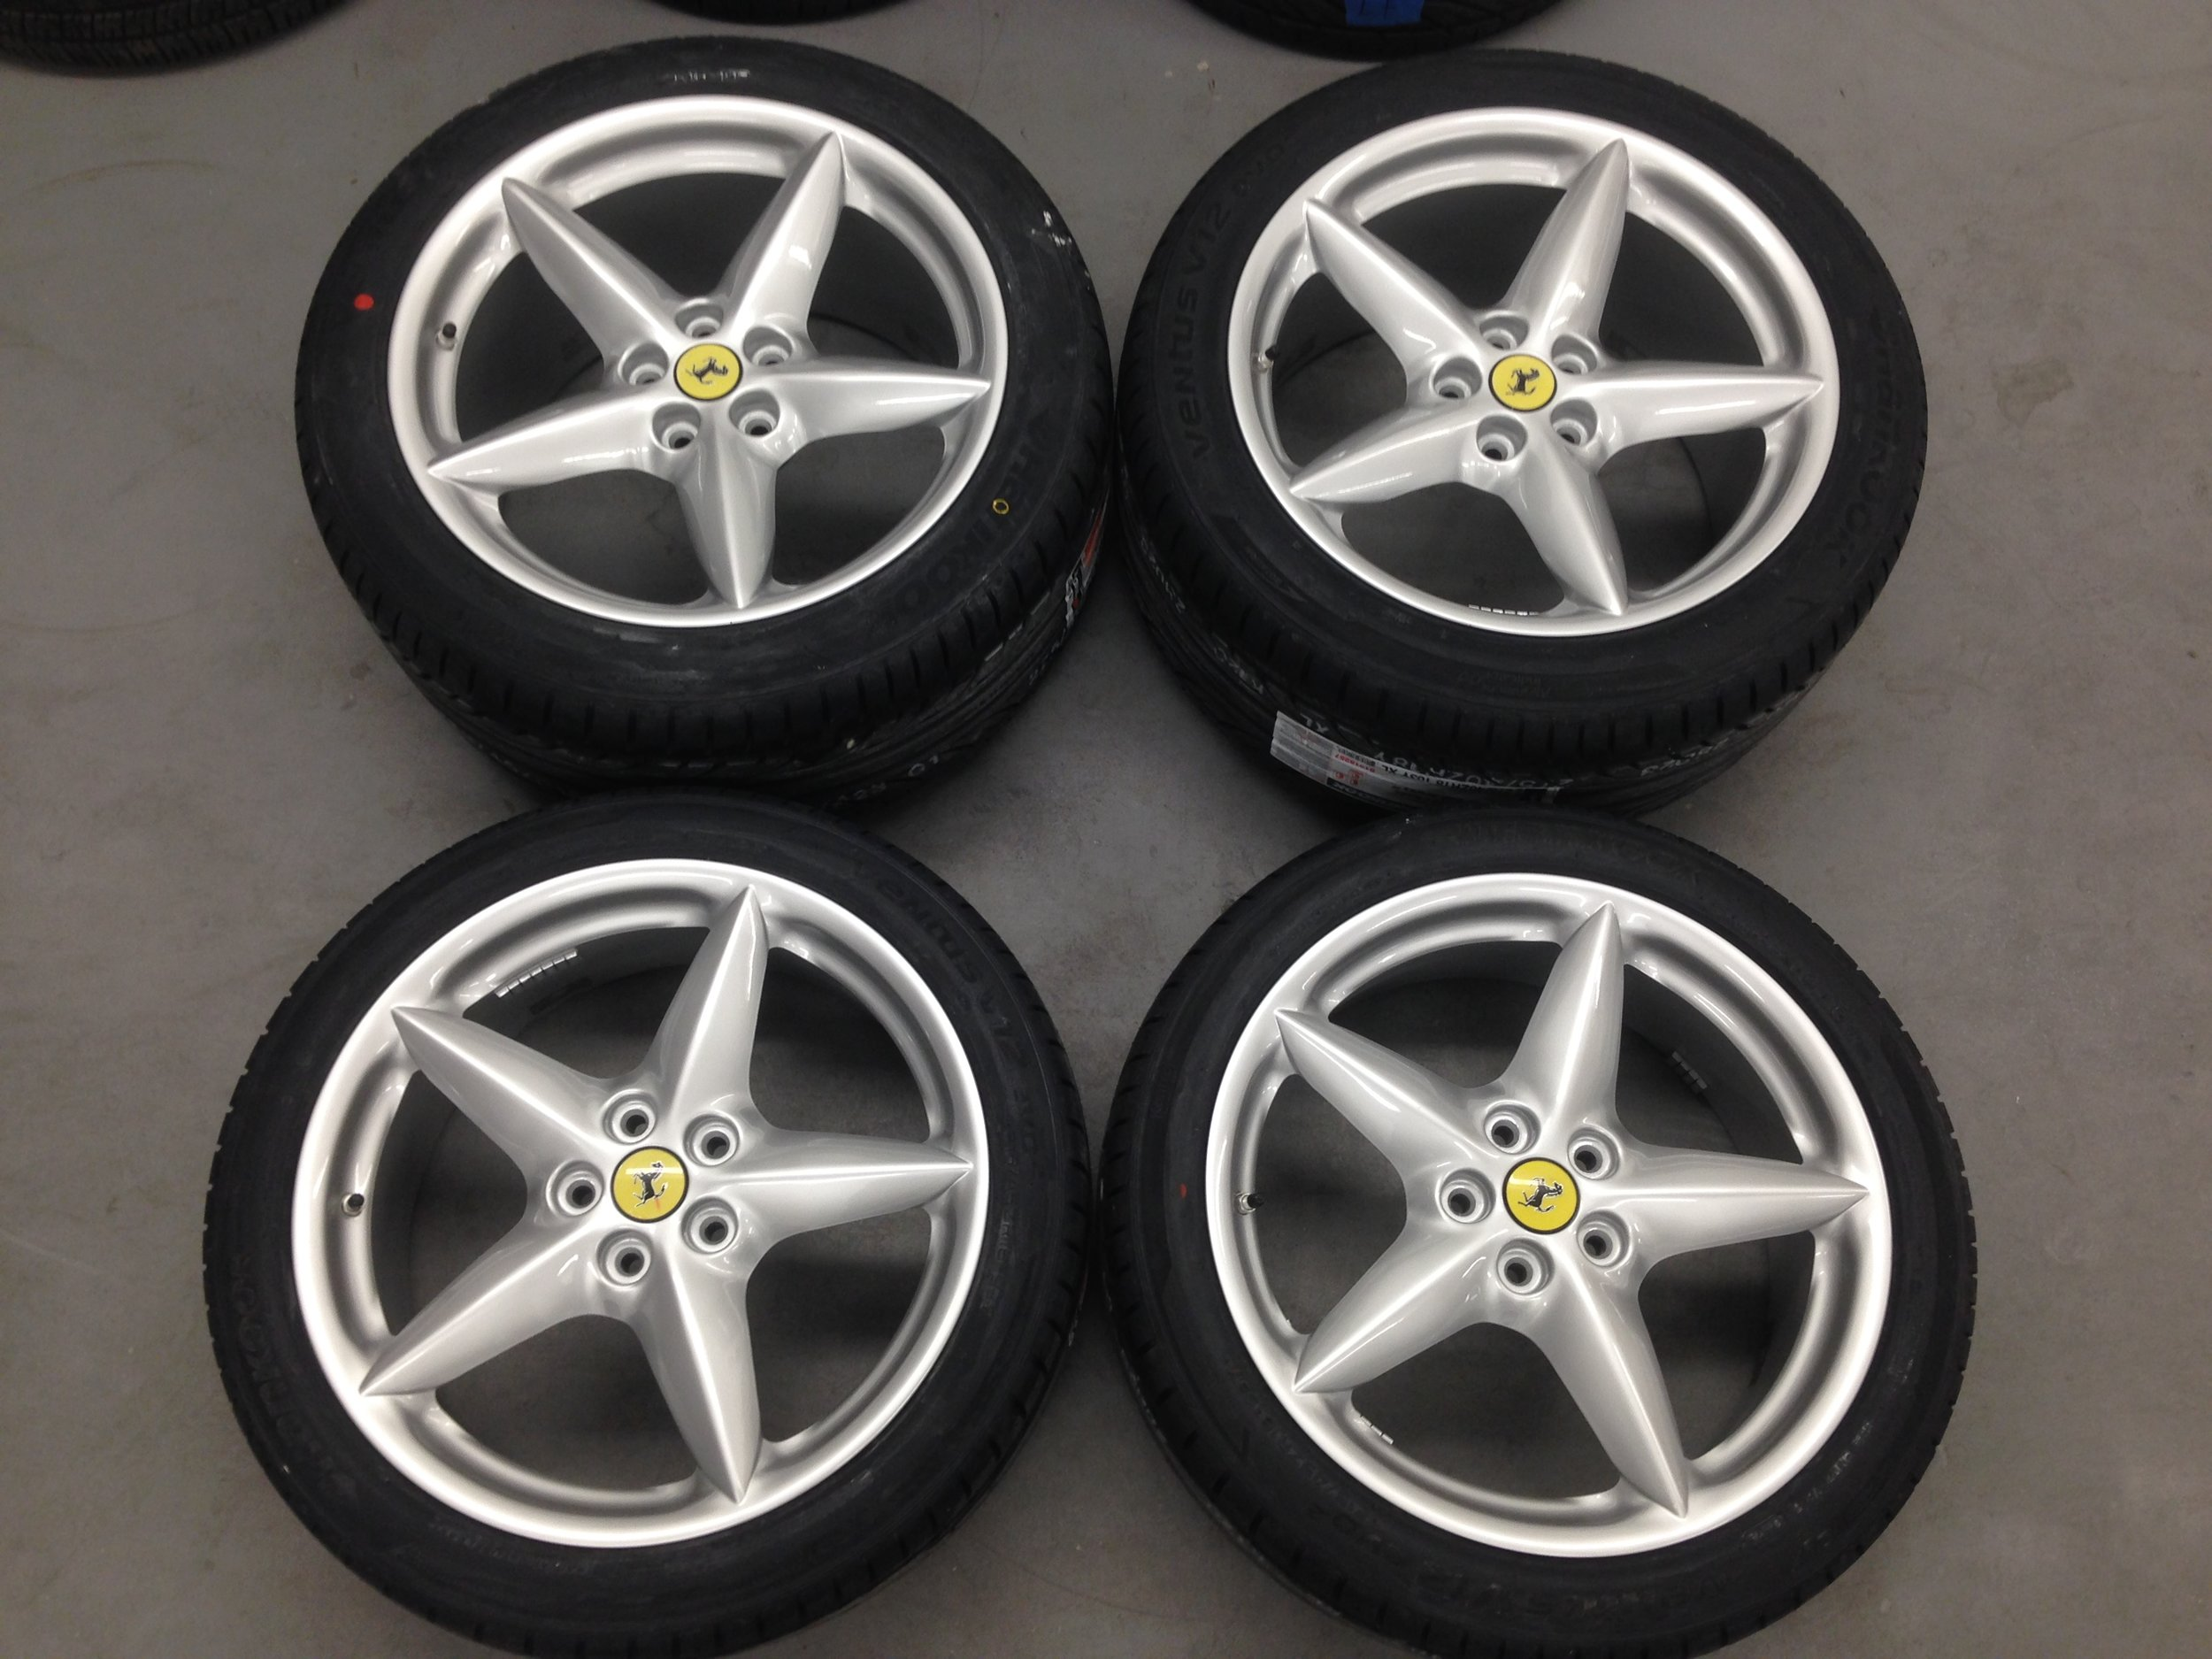 Ferrari Wheels 1.jpg